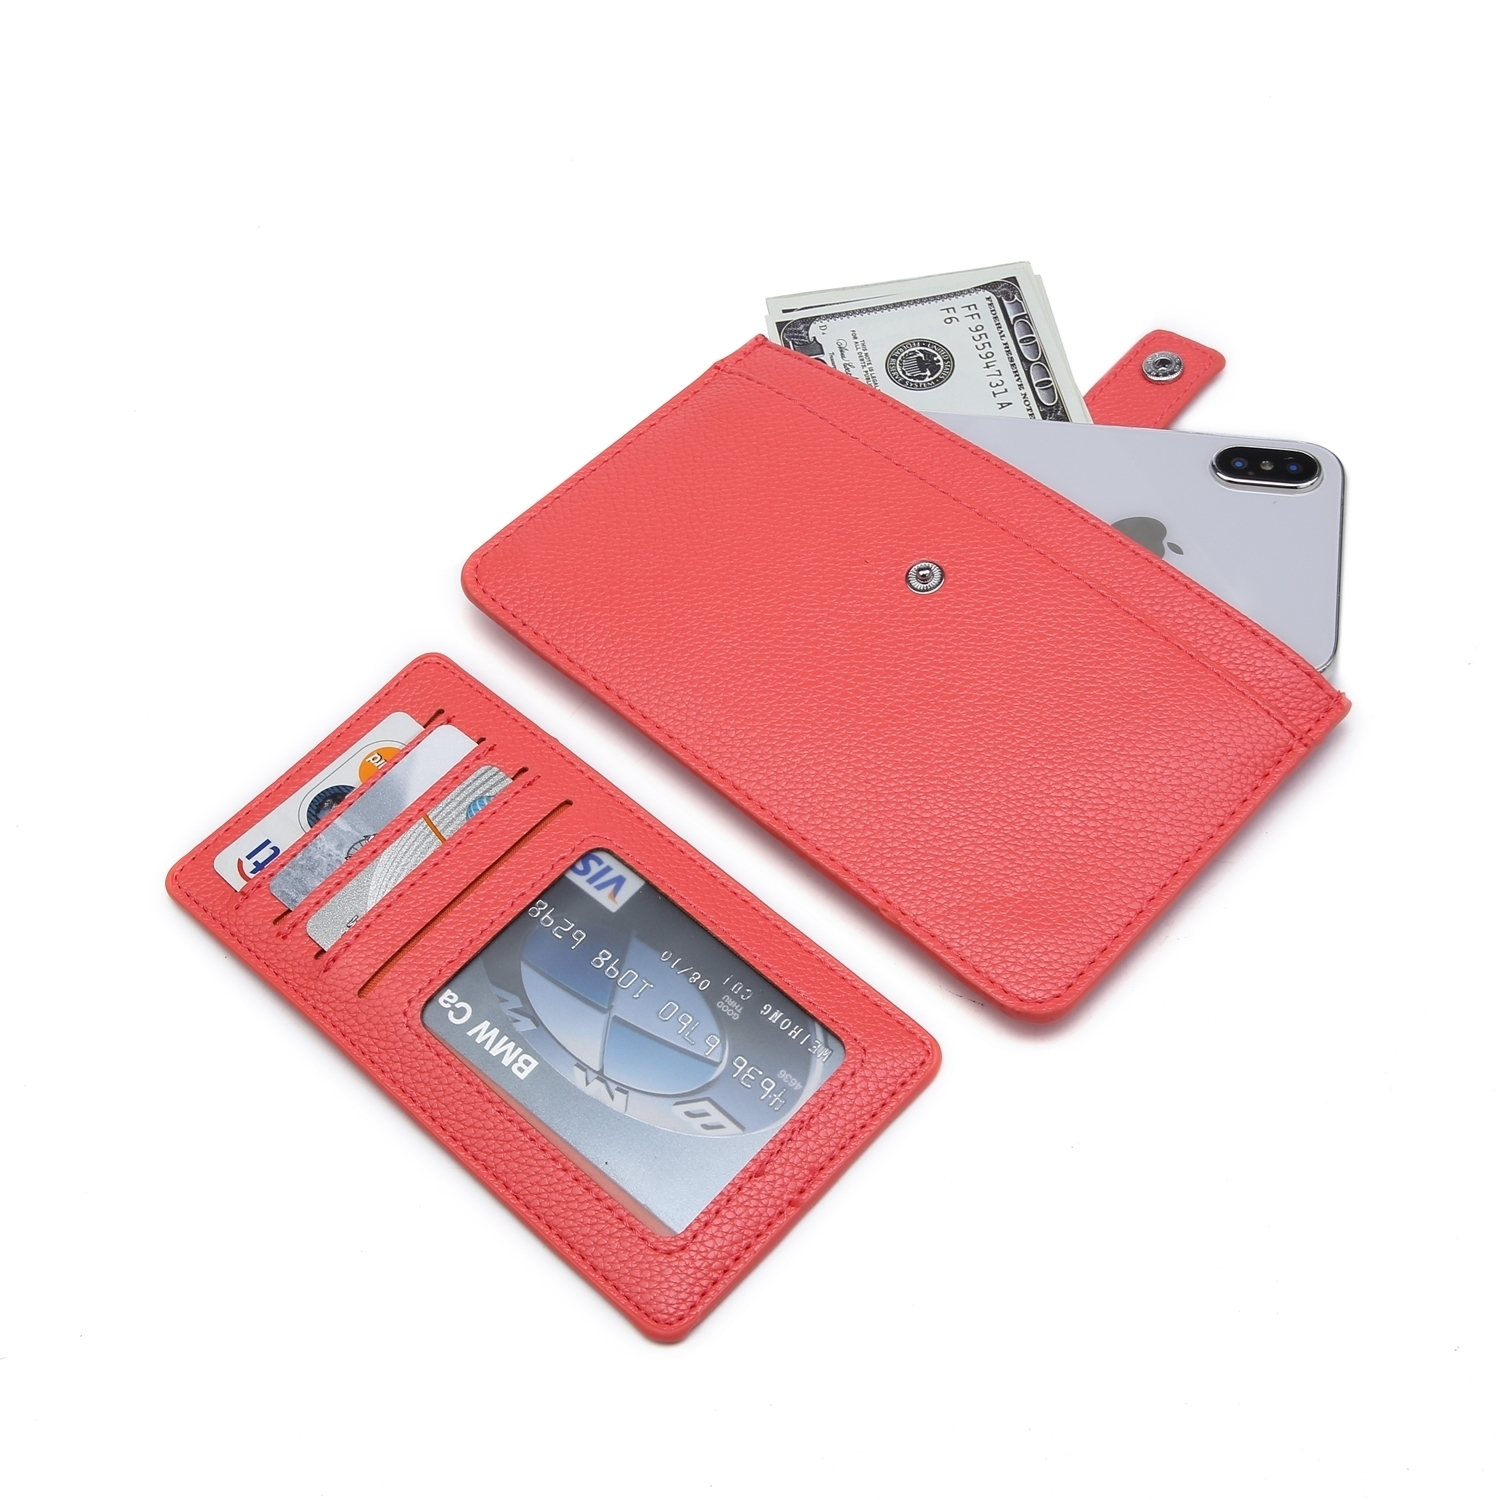 7168 HOM Phone & Card Wallet